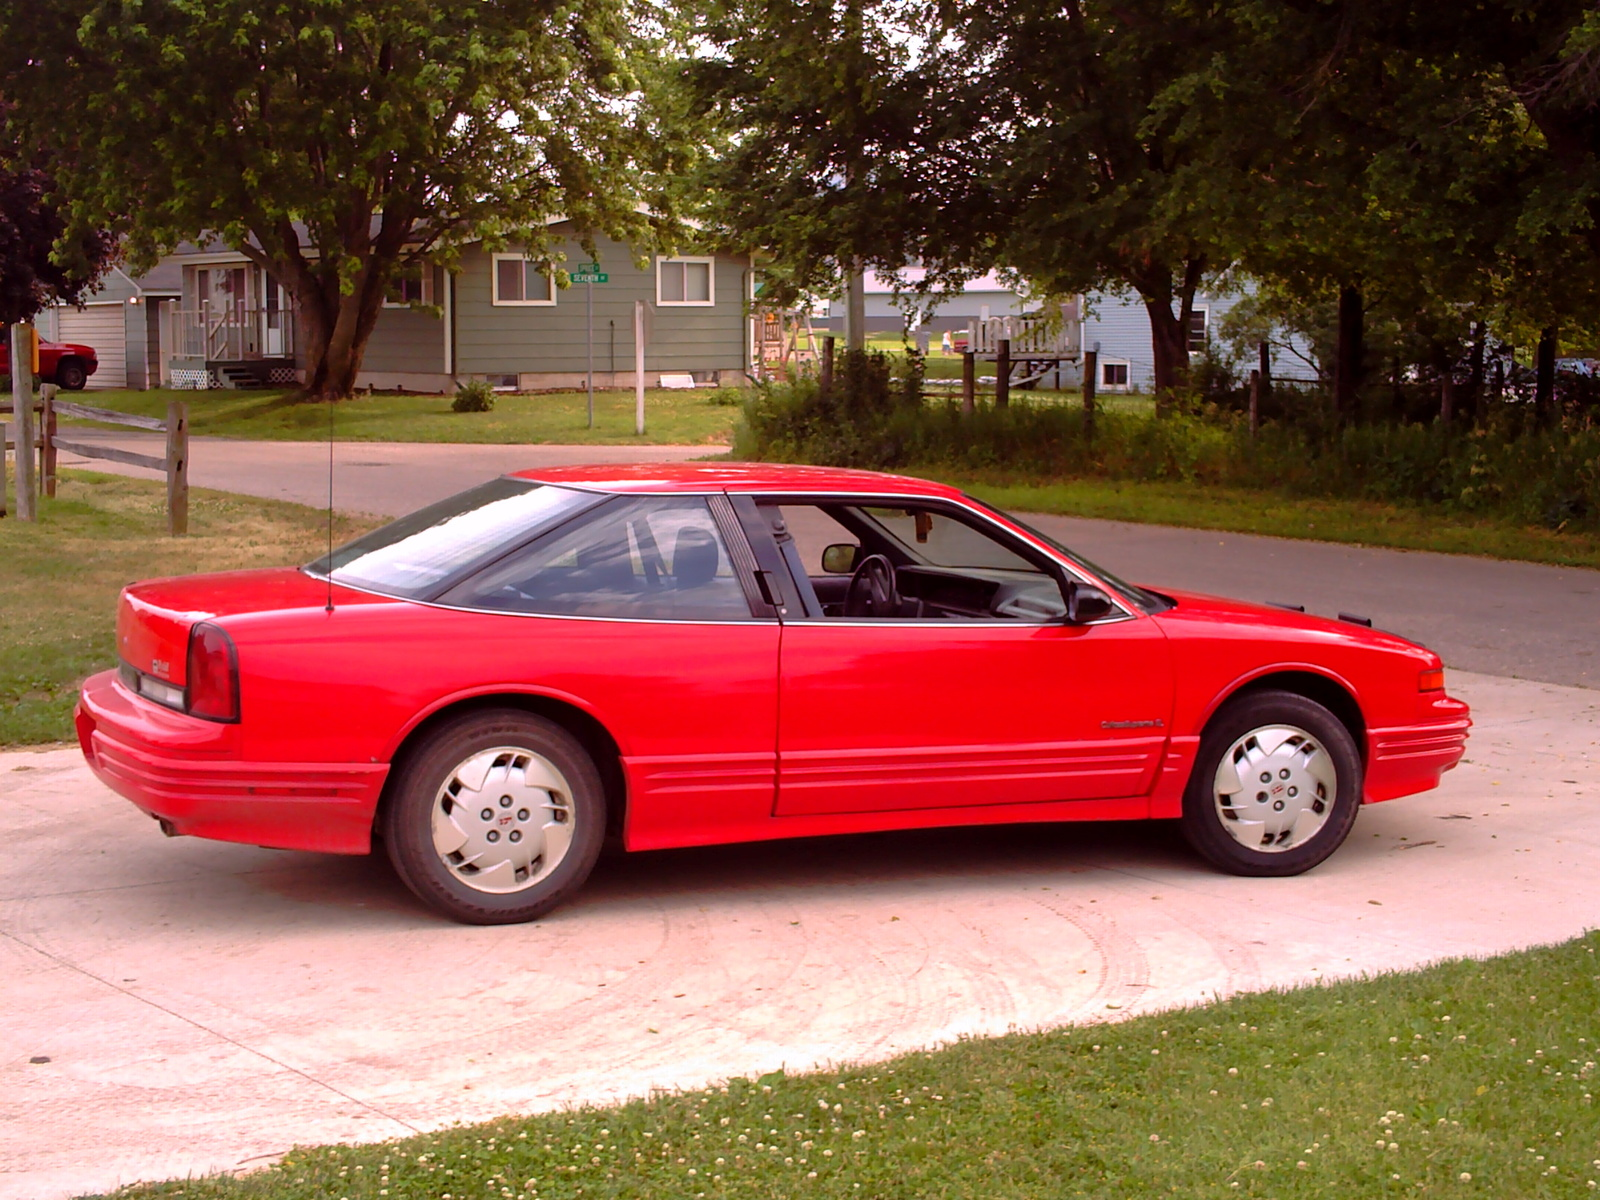 1987 Ford Mustang Pictures C3704 pi18493249 also 1989 Ford Mustang Pictures C3706 in addition 1988 Chevrolet Camaro Rs Pictures T33391 pi35801942 also 1986 Chevrolet Camaro Pictures C3649 together with 1986 Ford Mustang Pictures C3703 pi35809988. on chevrolet camaro 2 5 1988 specs and images